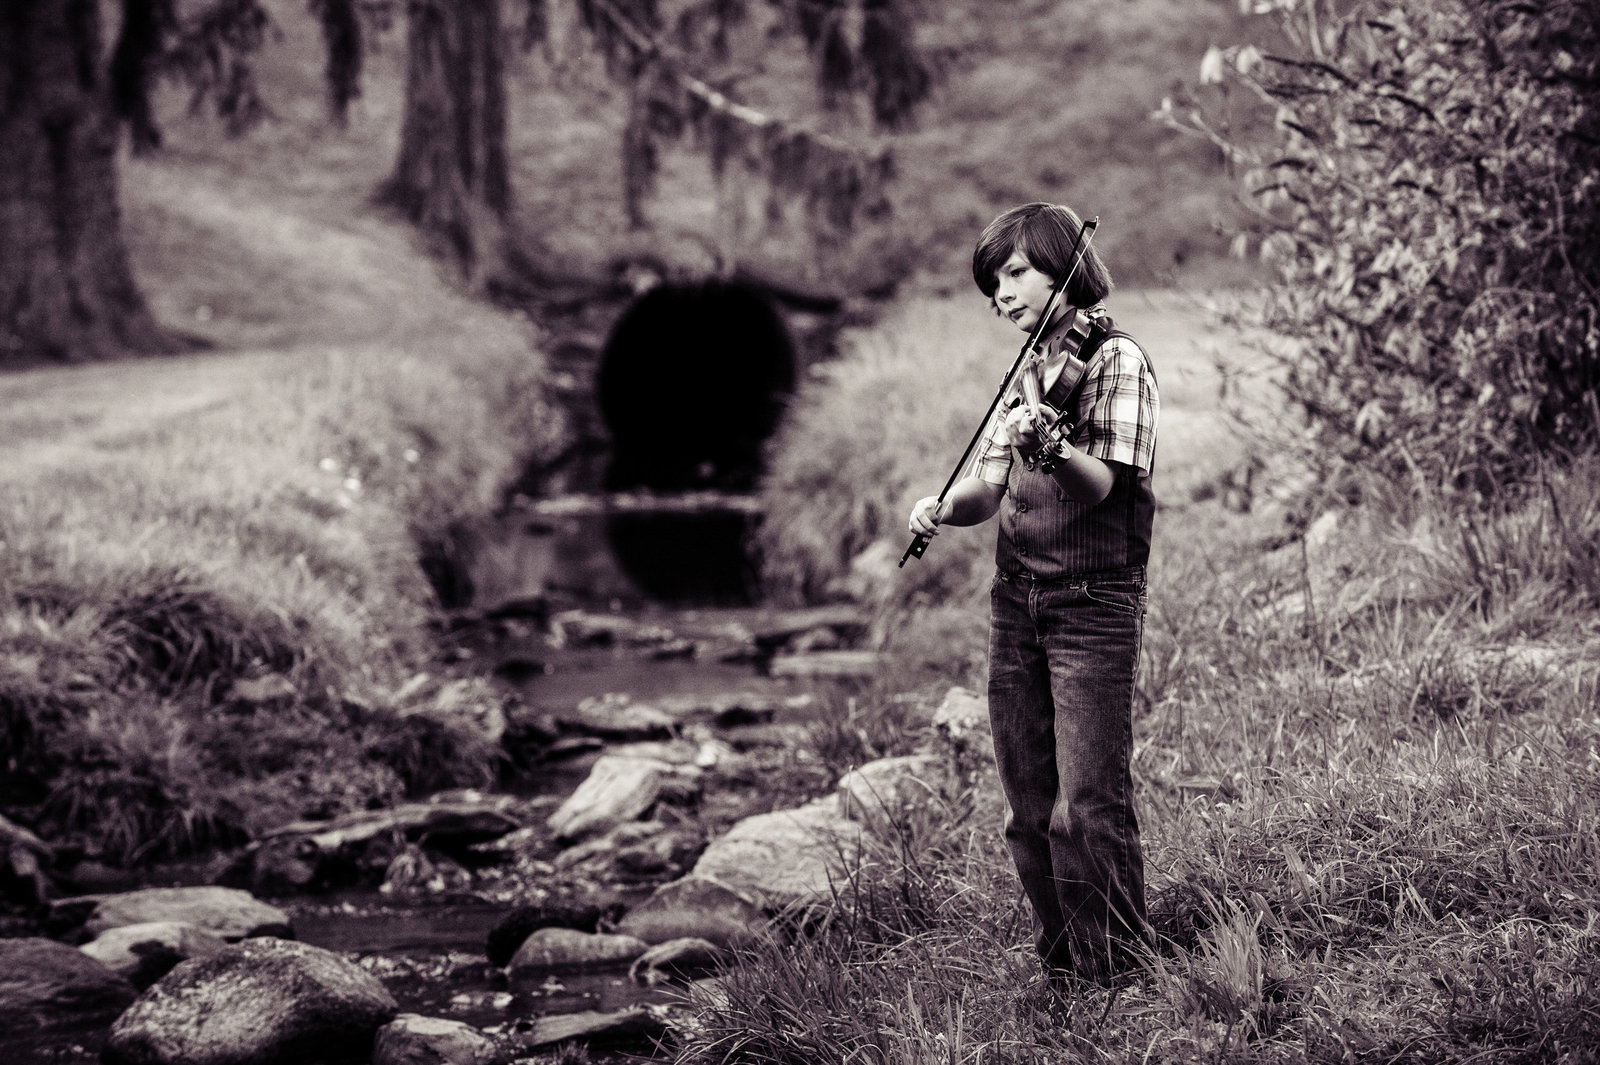 young liam purcell plays fiddle next to a stream in boone